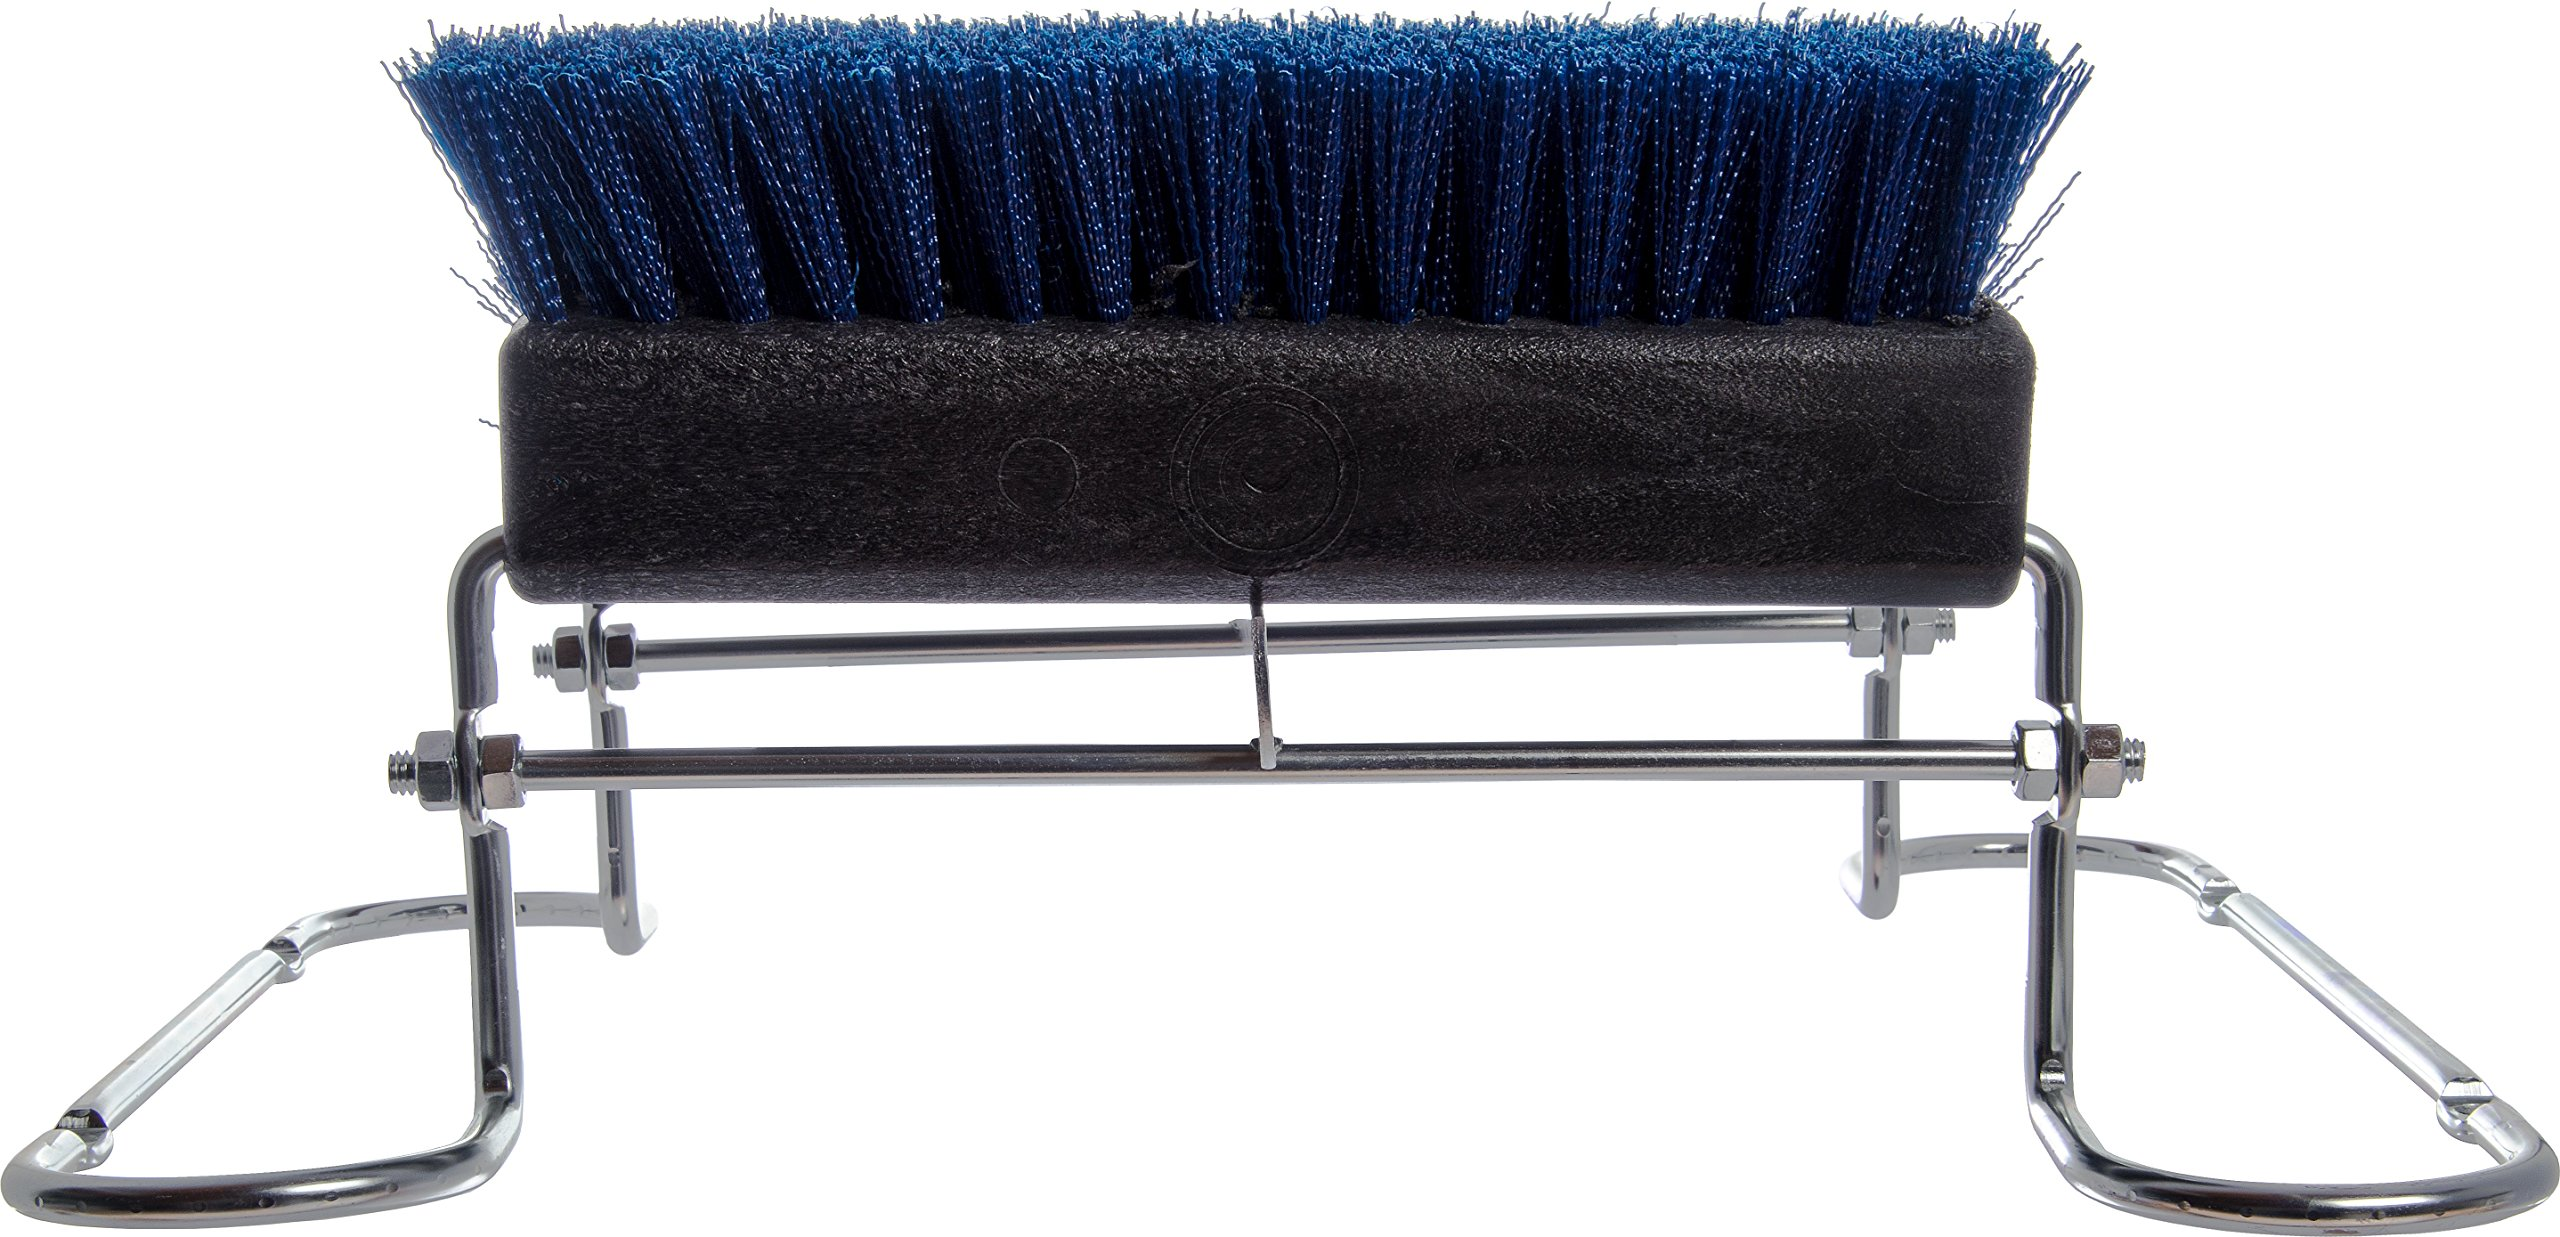 Carlisle 4042414 Commercial Boot 'N Shoe Brush Scraper with Chrome Plated Steel Frame, Blue by Carlisle (Image #5)